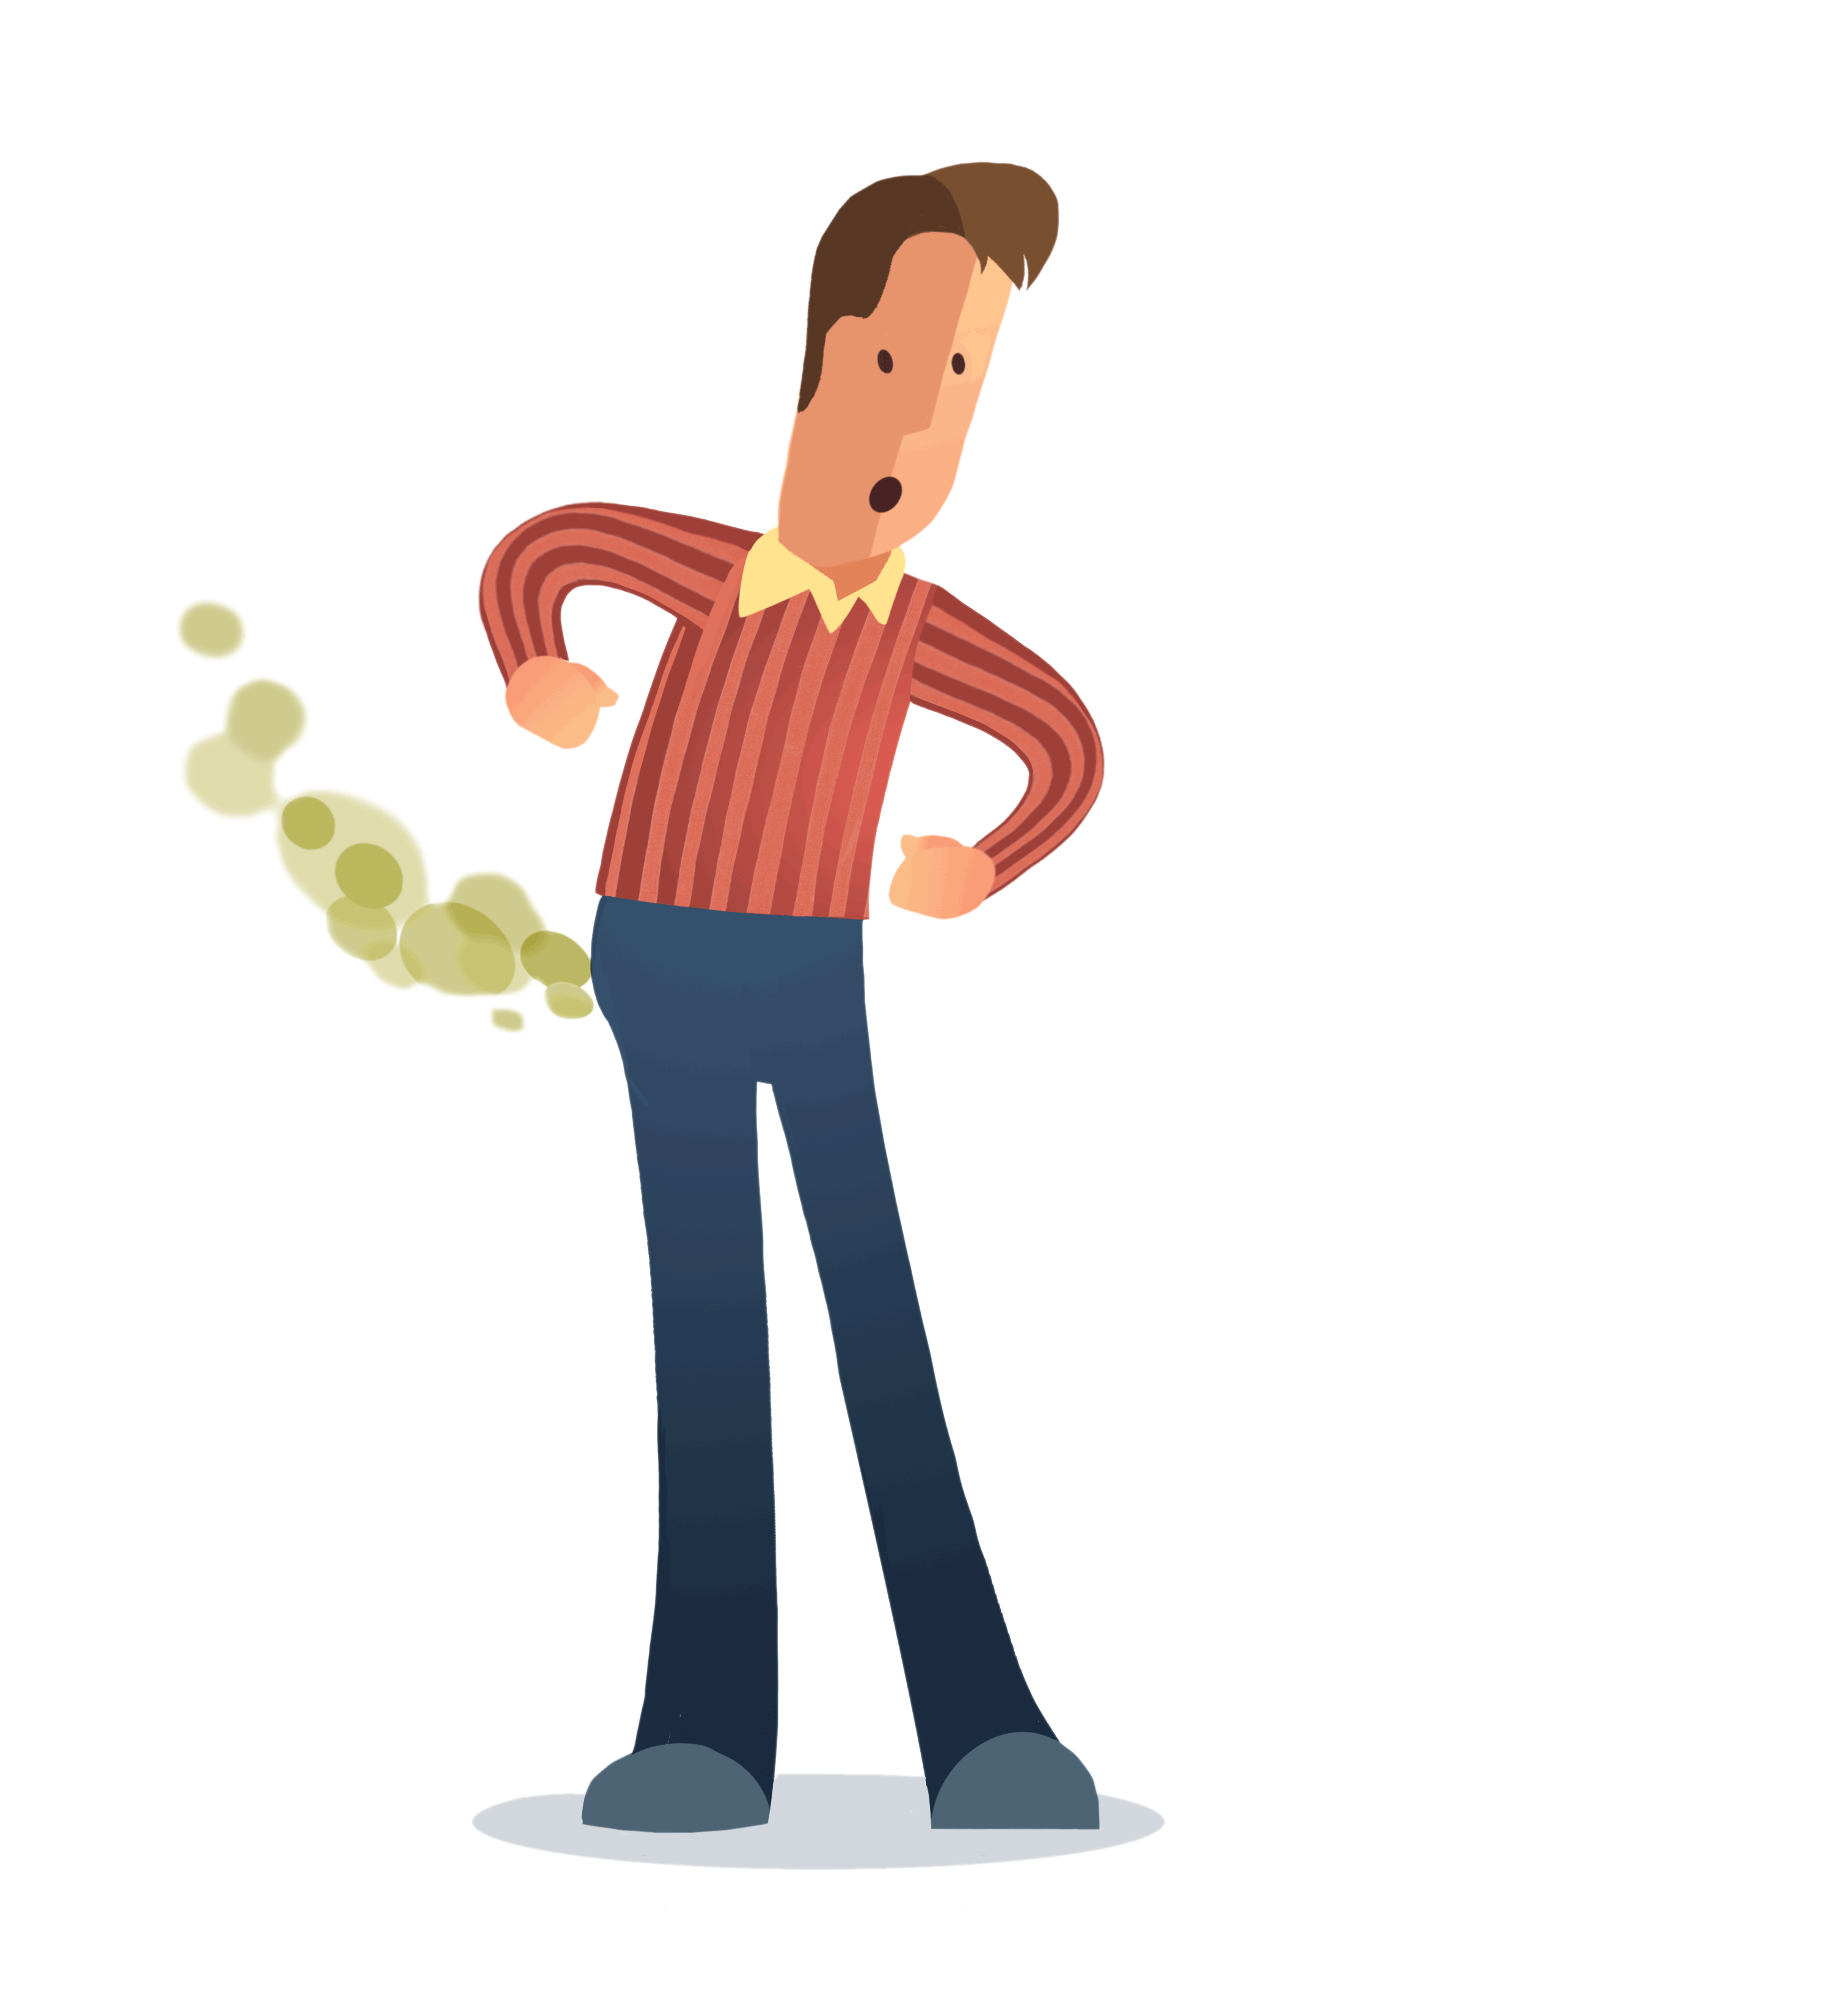 Pain Stomach Cramp Transparent Png Clipart Free Download Ya